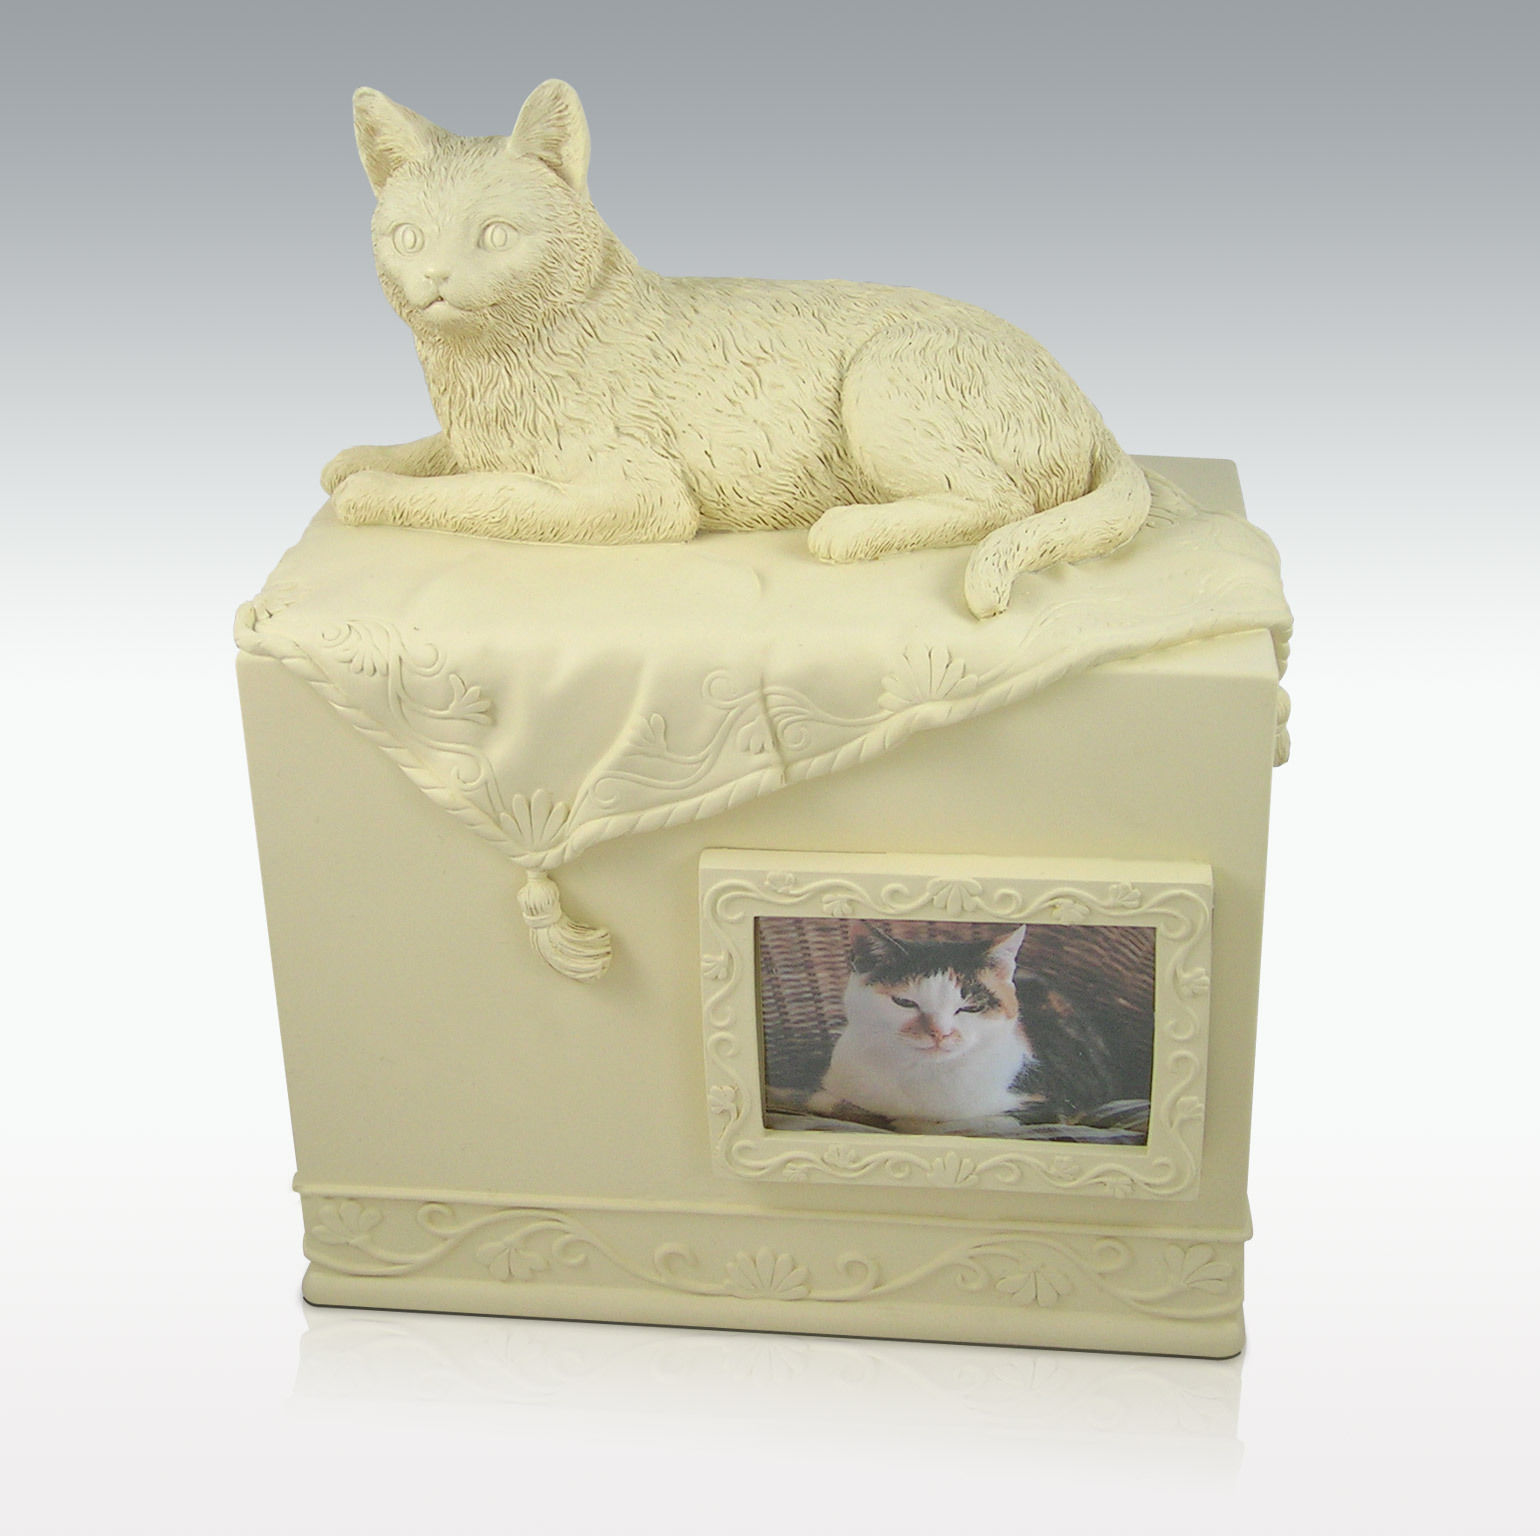 Cat Urn with Photo